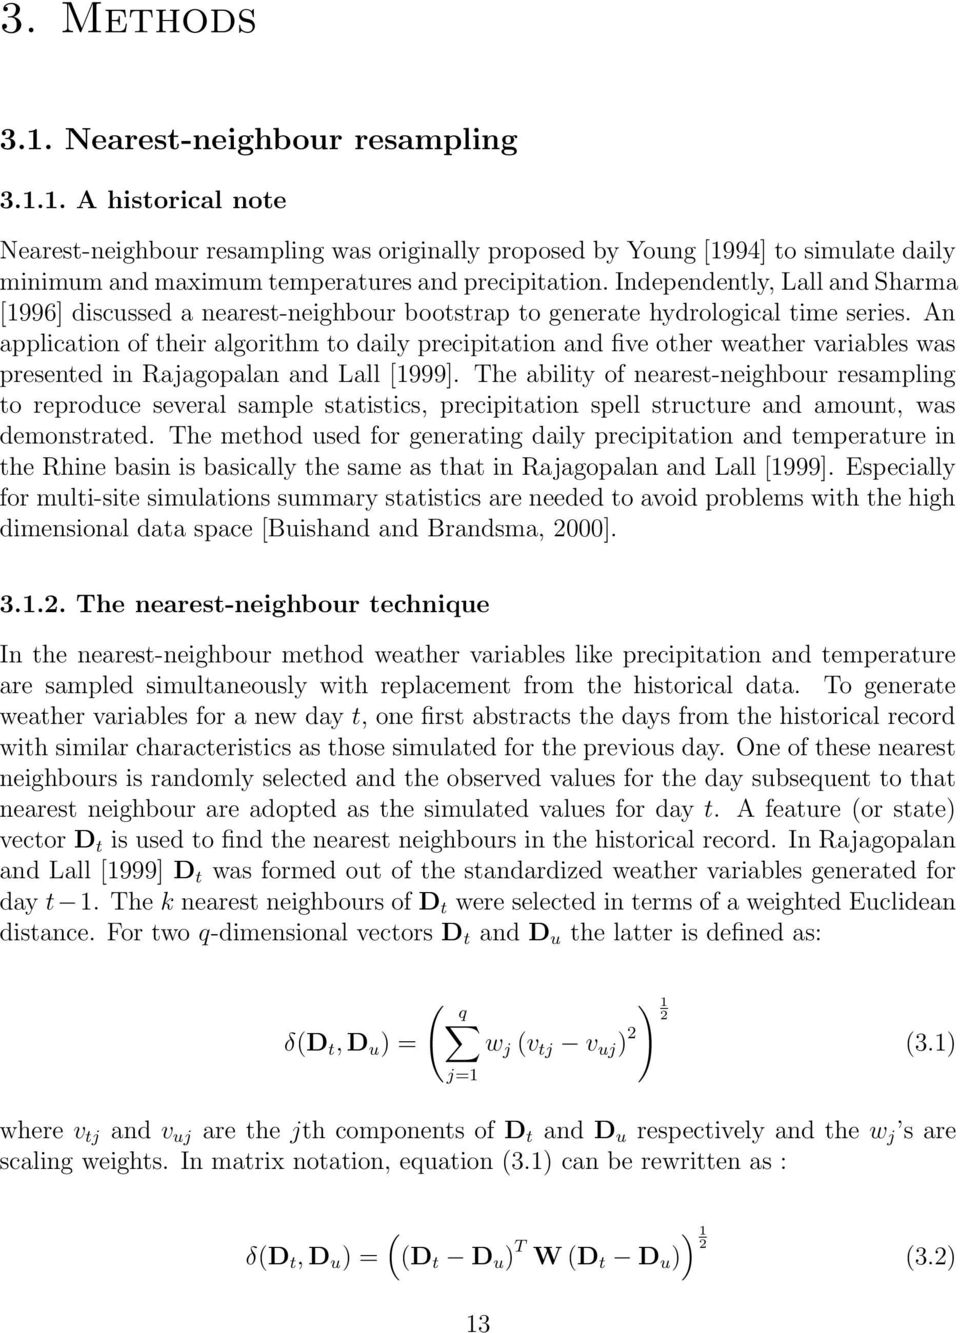 An application of their algorithm to daily precipitation and five other weather variables was presented in Rajagopalan and Lall [1999].